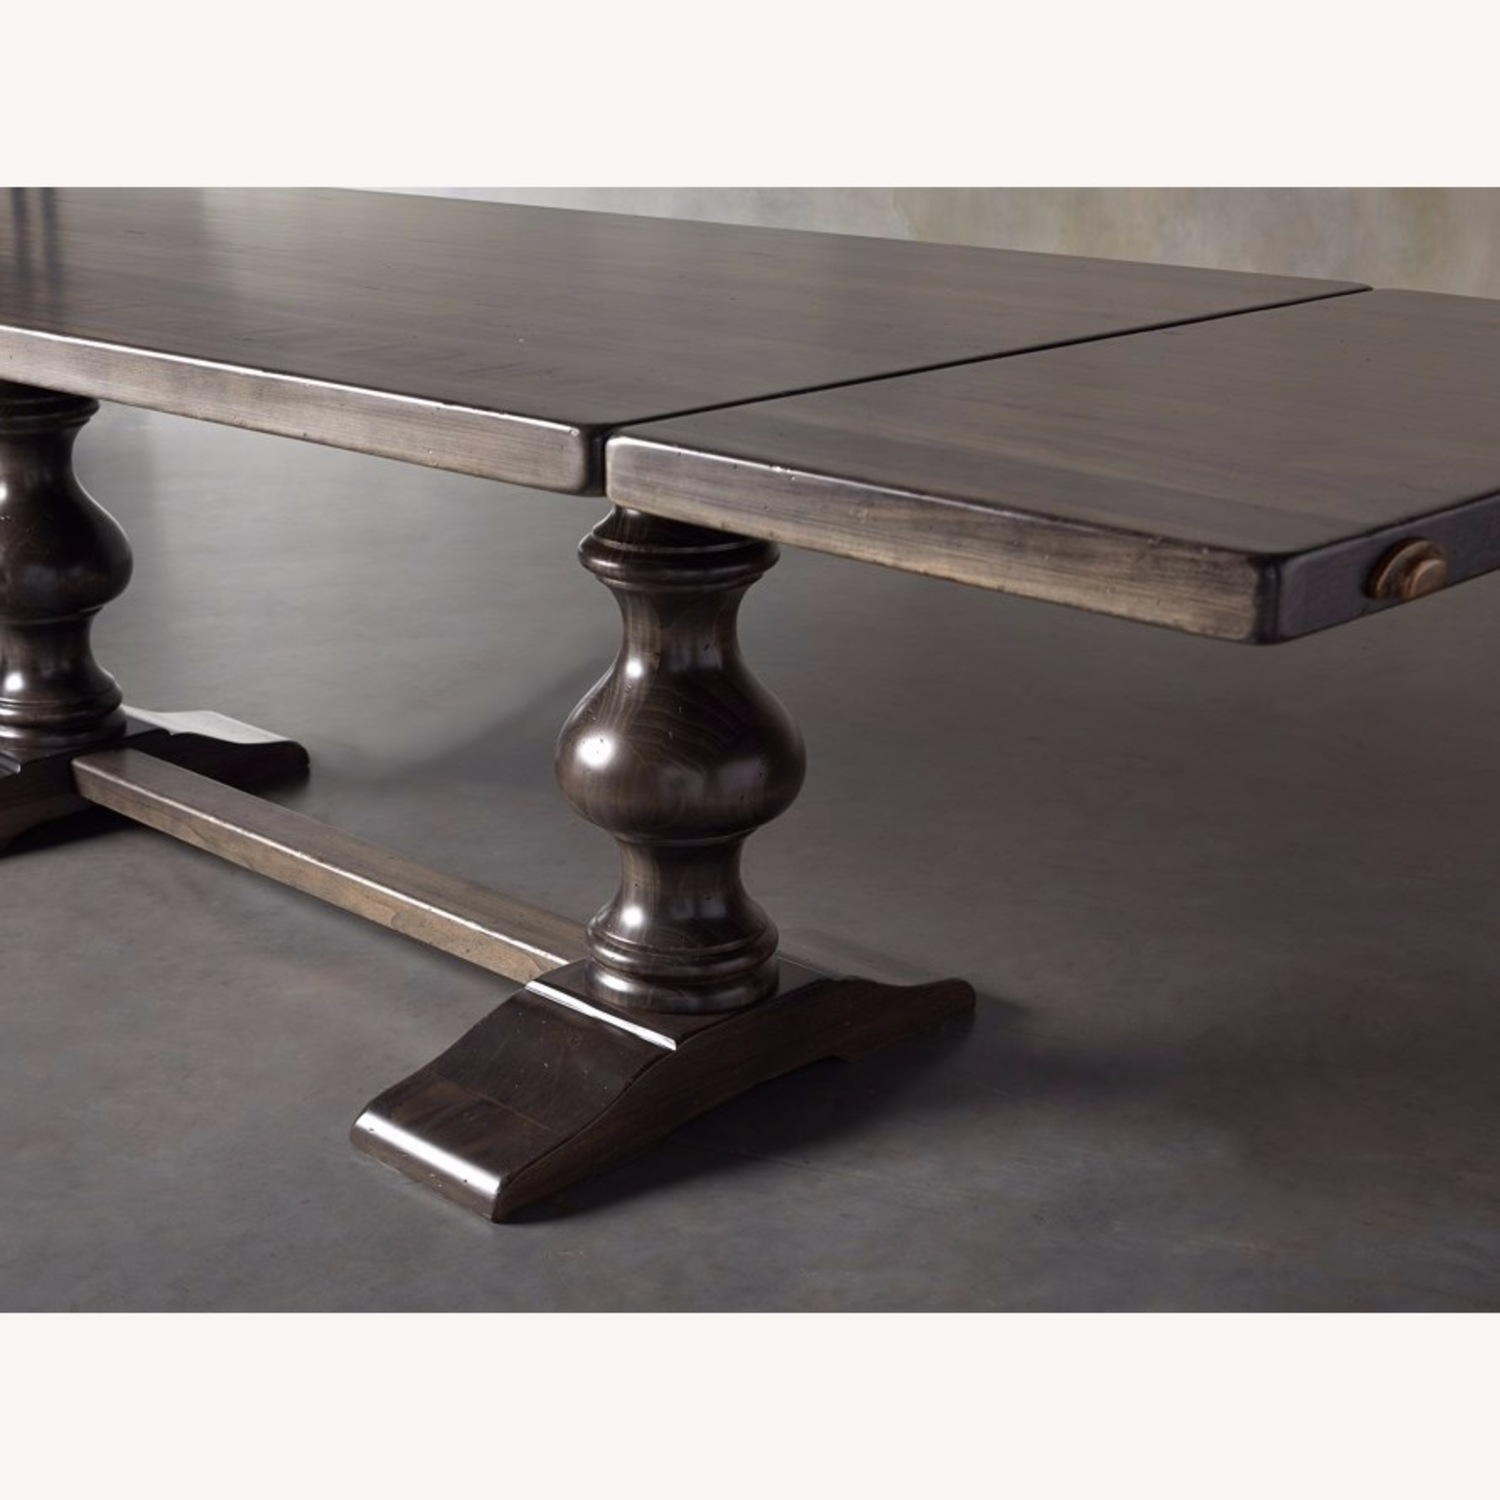 Arhaus Tuscany Extension Dining Table - image-2